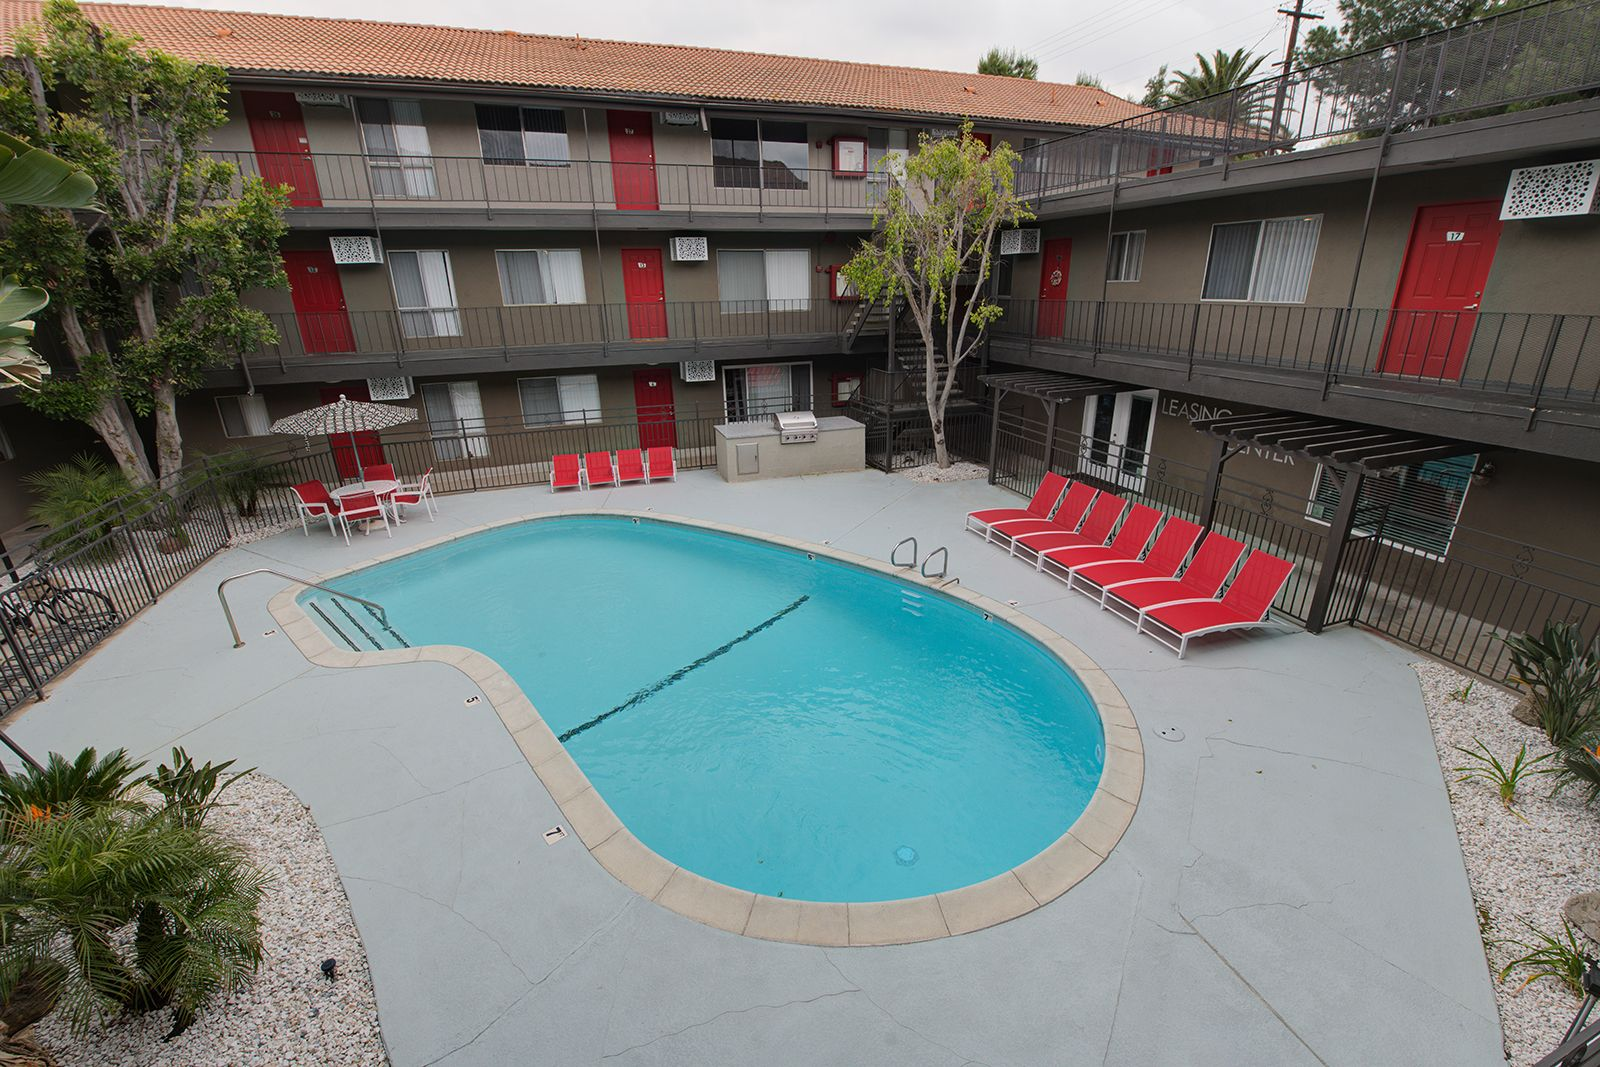 Welcome Home Dwell Apartments Is Located In Between Moreno Valley And San Bernardino In Close Proximity To Ucr Col Dwell Apartments For Rent Drive In Theater